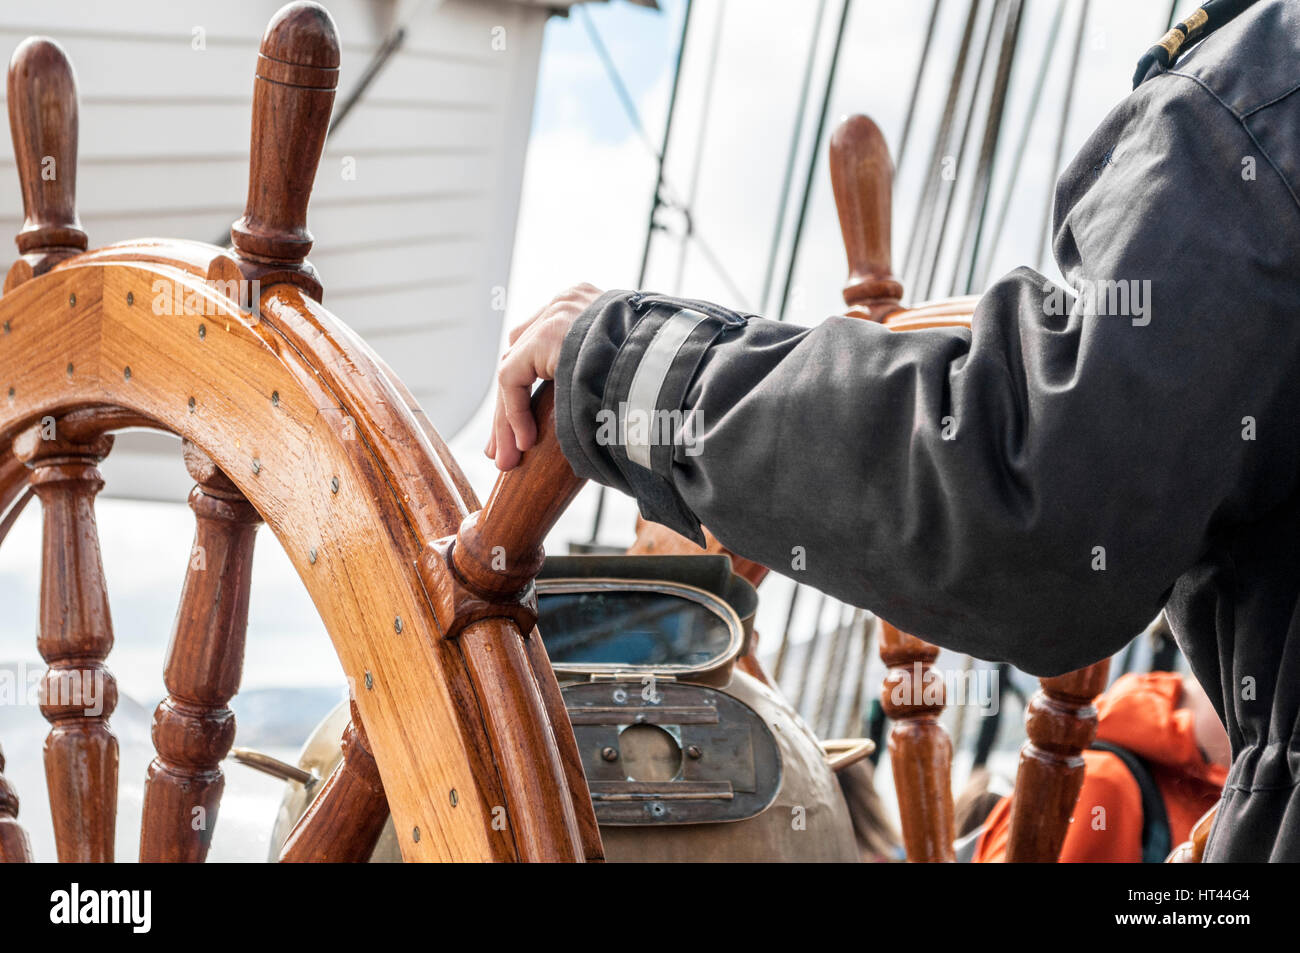 Captain behind a classic ships steering wheel - Stock Image